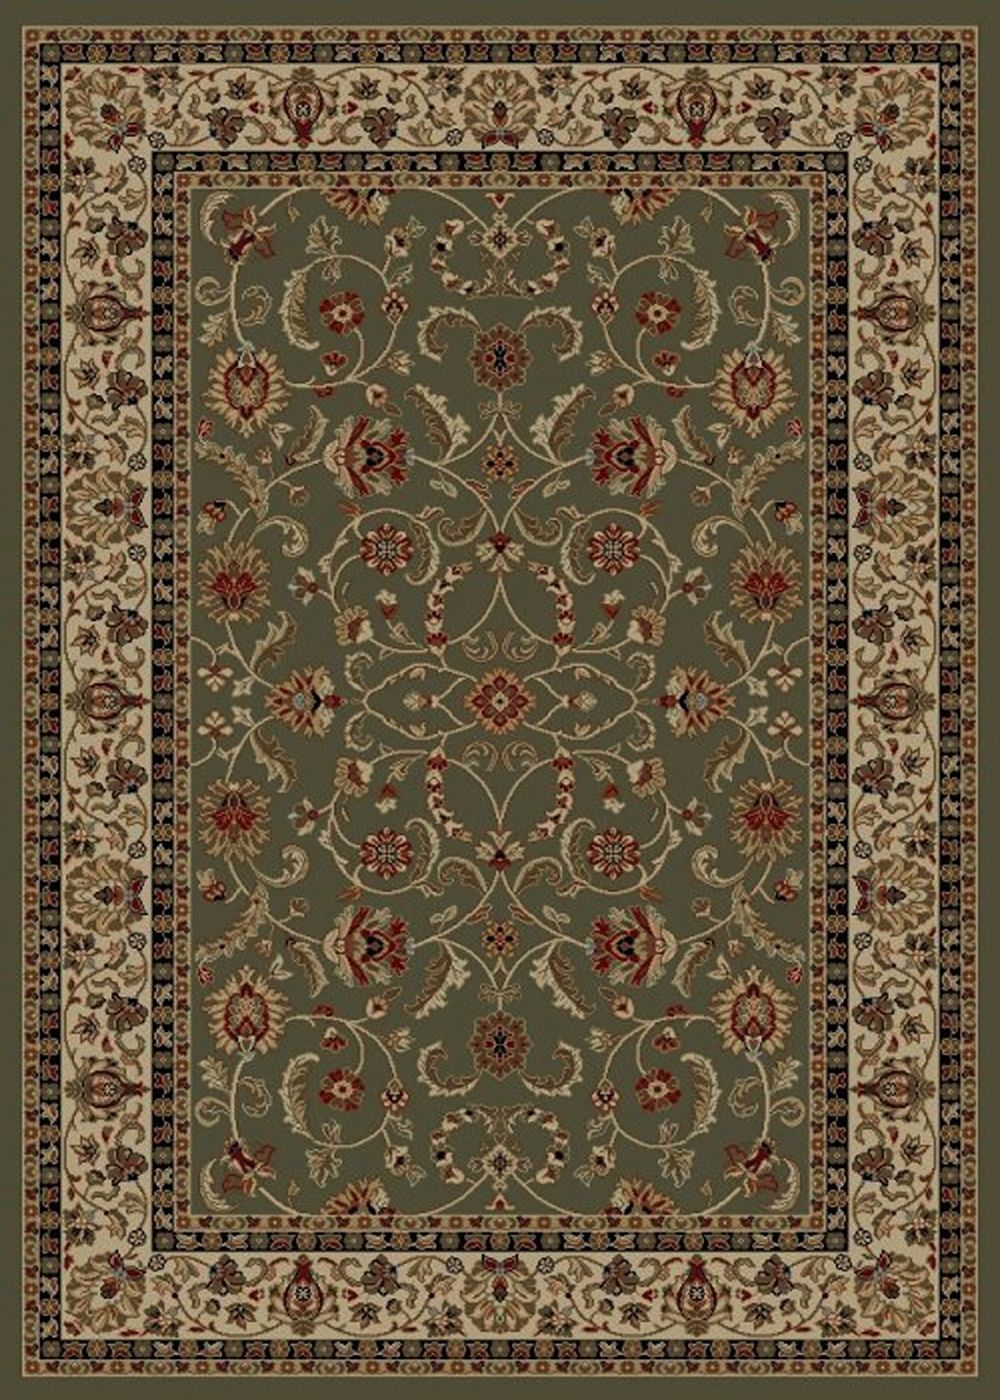 mayberry home town traditional area rug collection